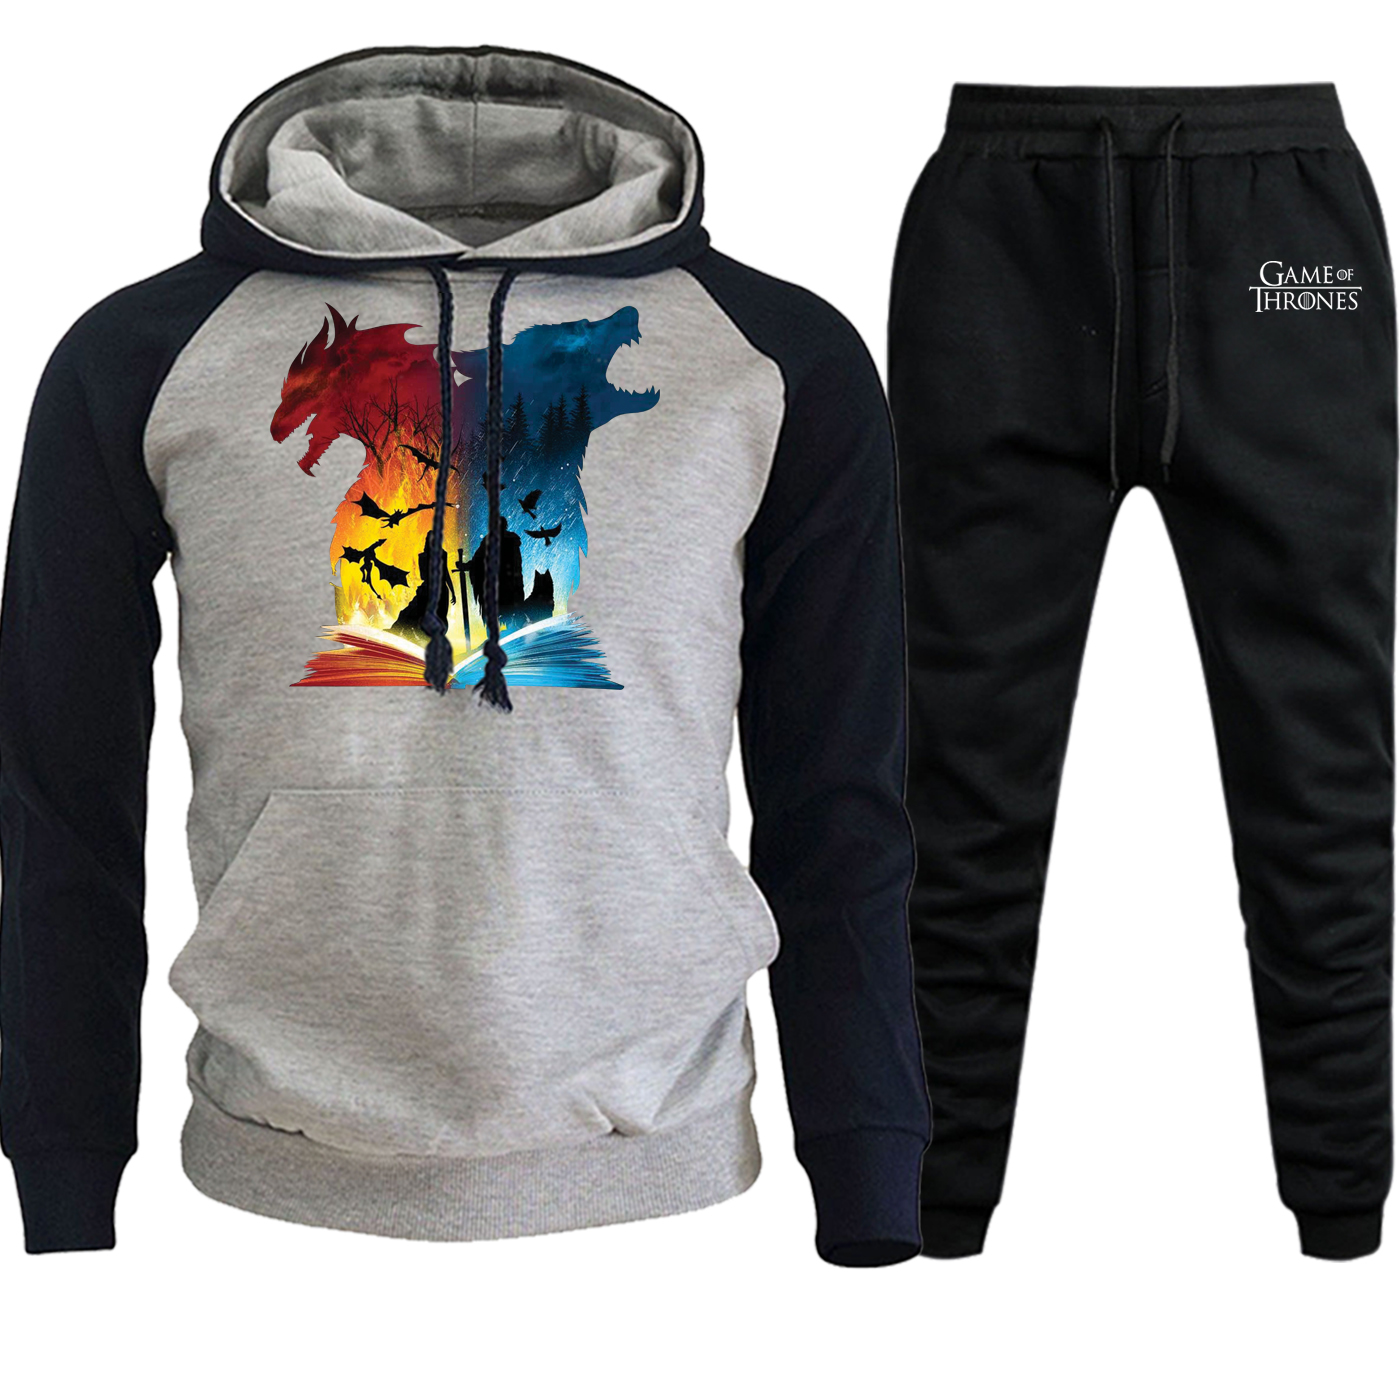 Casual Pullover Suit Male Hooded Autumn Winter 2019 Streetwear Raglan Mens Book Of Fire And Ice Fleece Hoodies+Pants 2 Piece Set